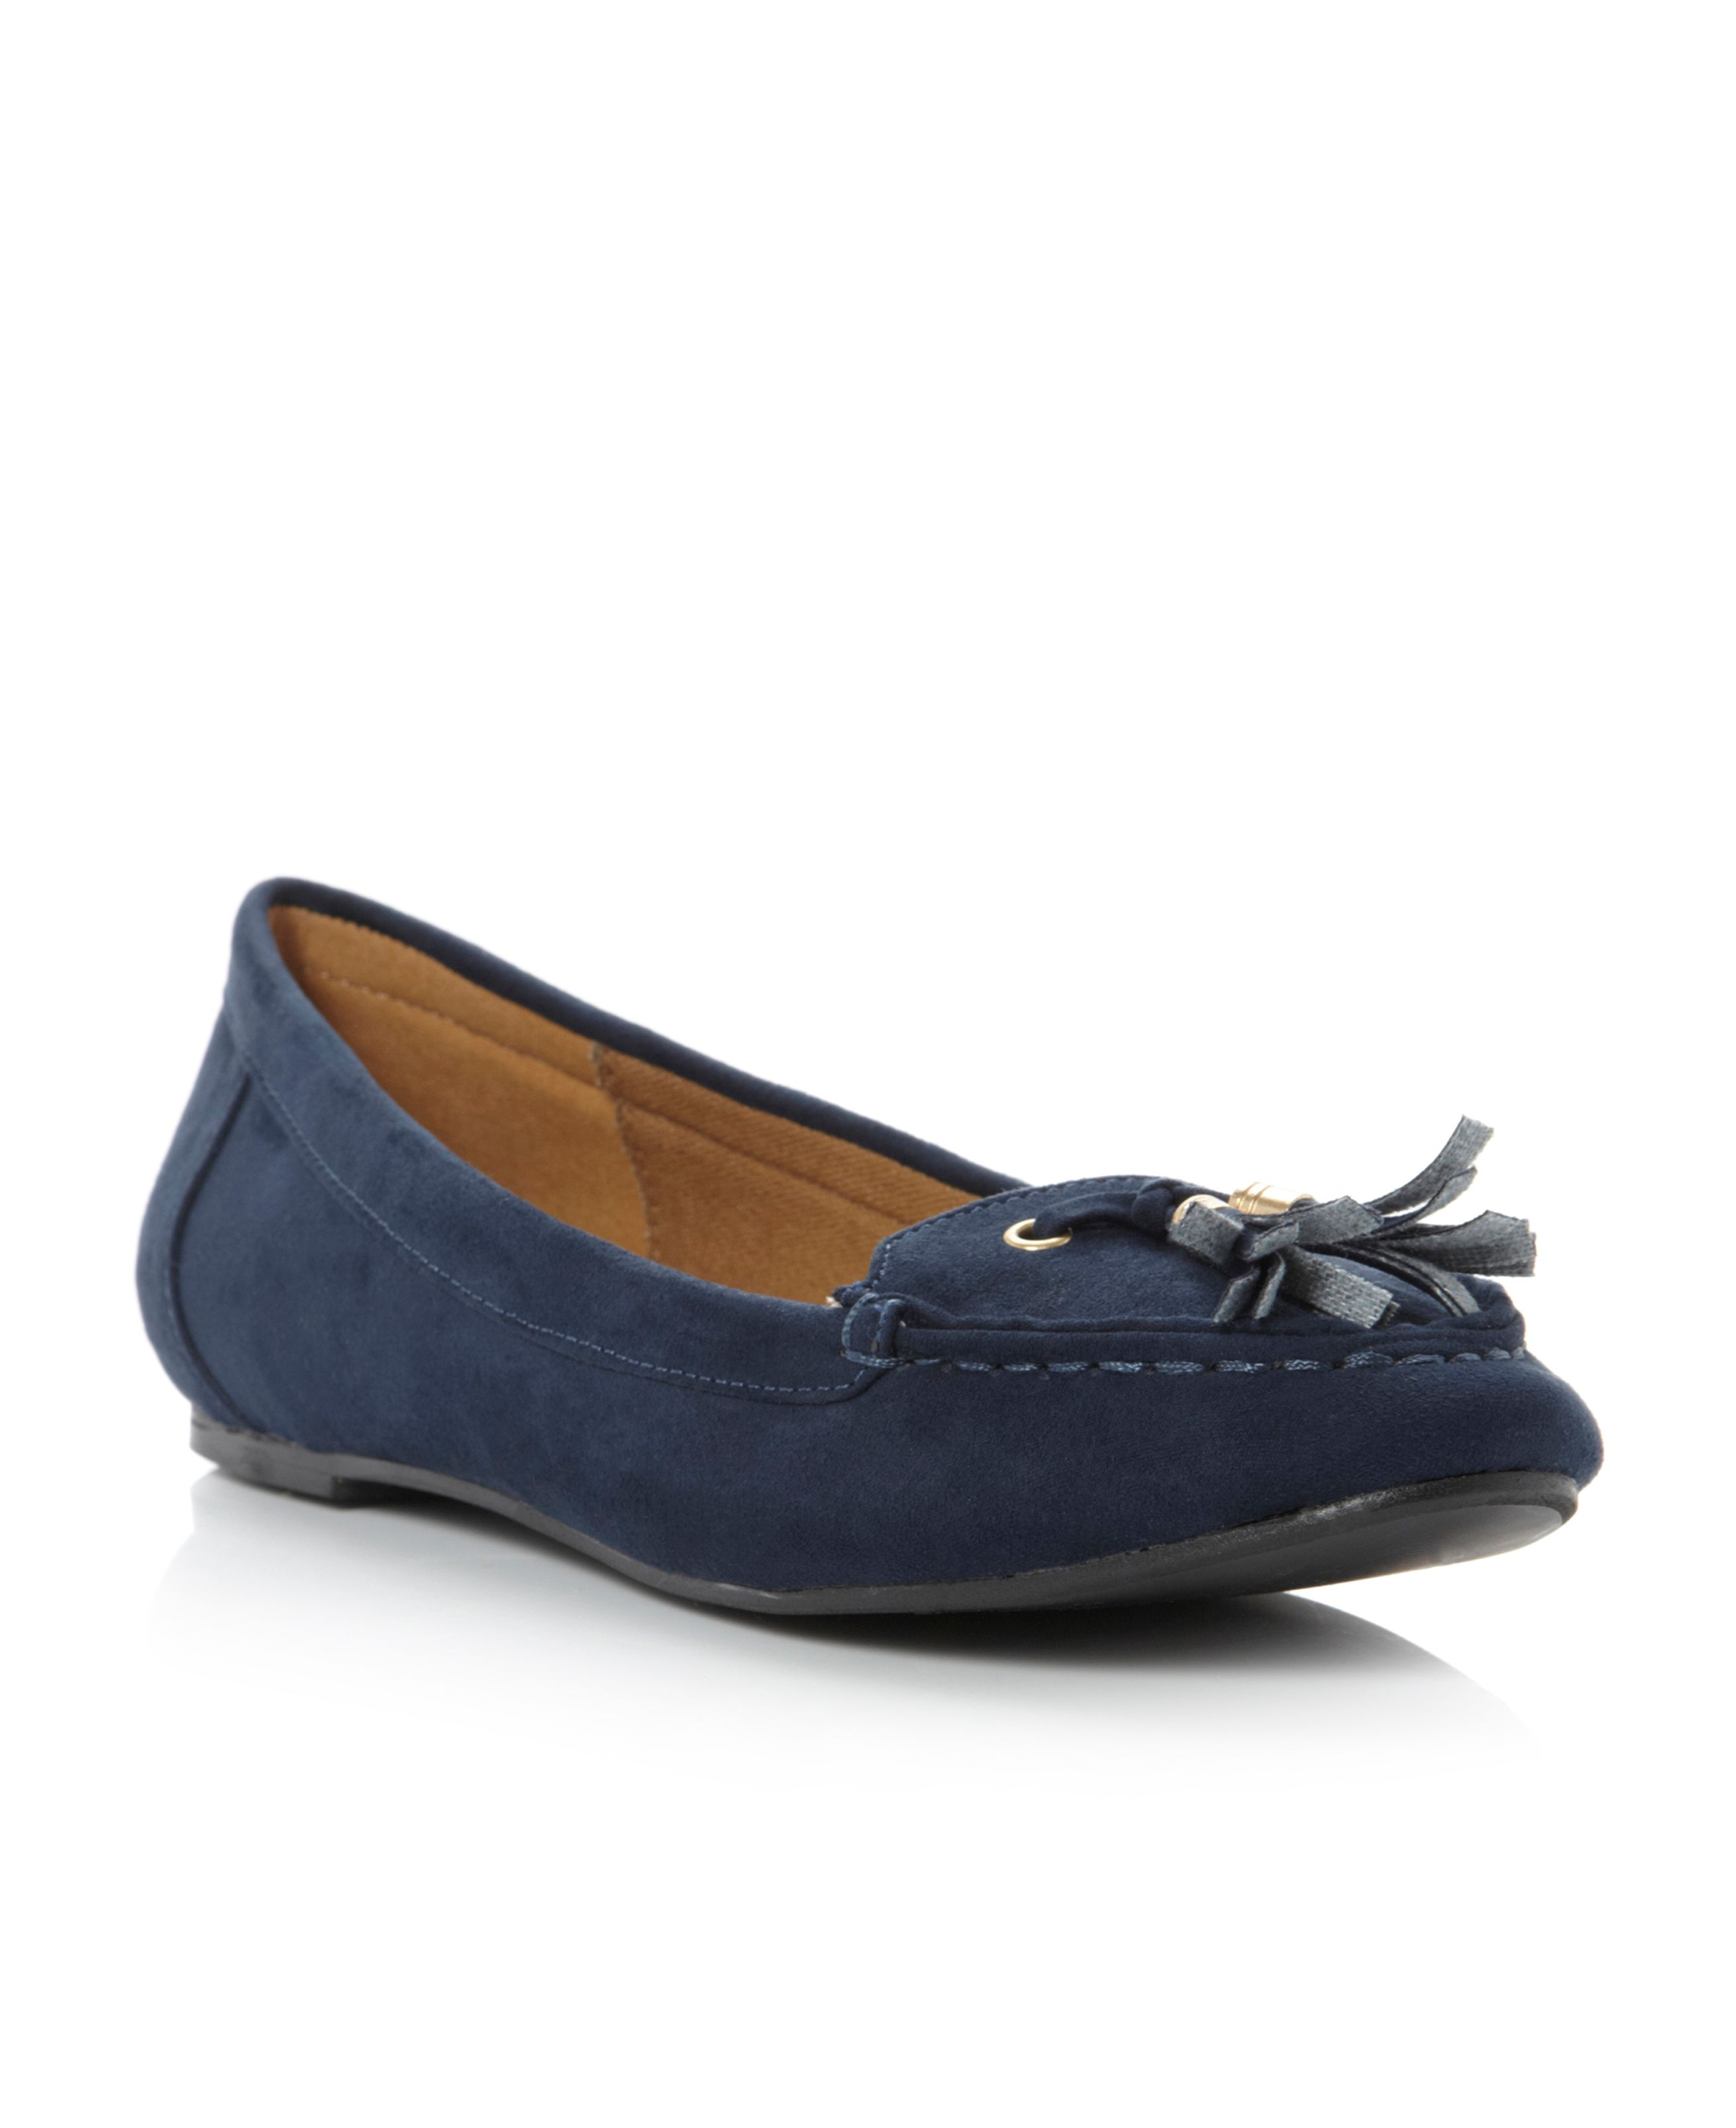 Larnaca tassle front loafer shoes